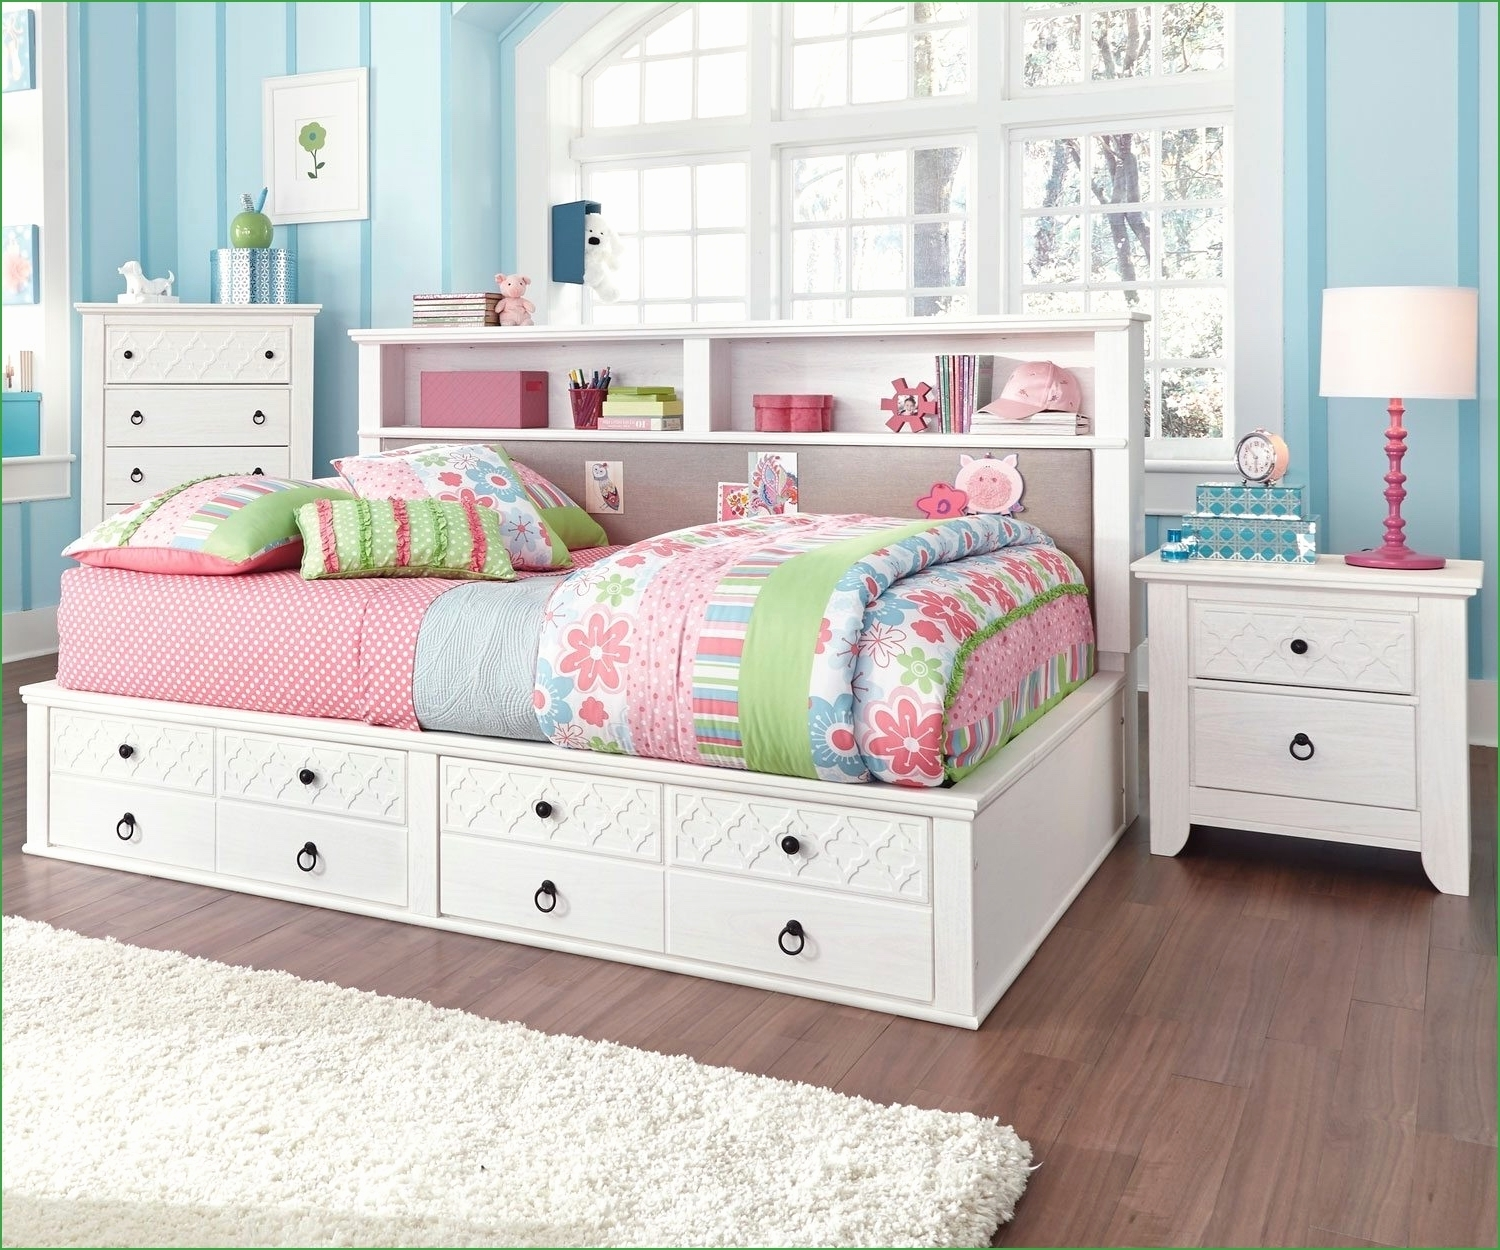 50 Elegant Full Size Storage Bed With Bookcase Headboard – For Best And Newest Full Size Storage Bed With Bookcases Headboard (View 2 of 15)